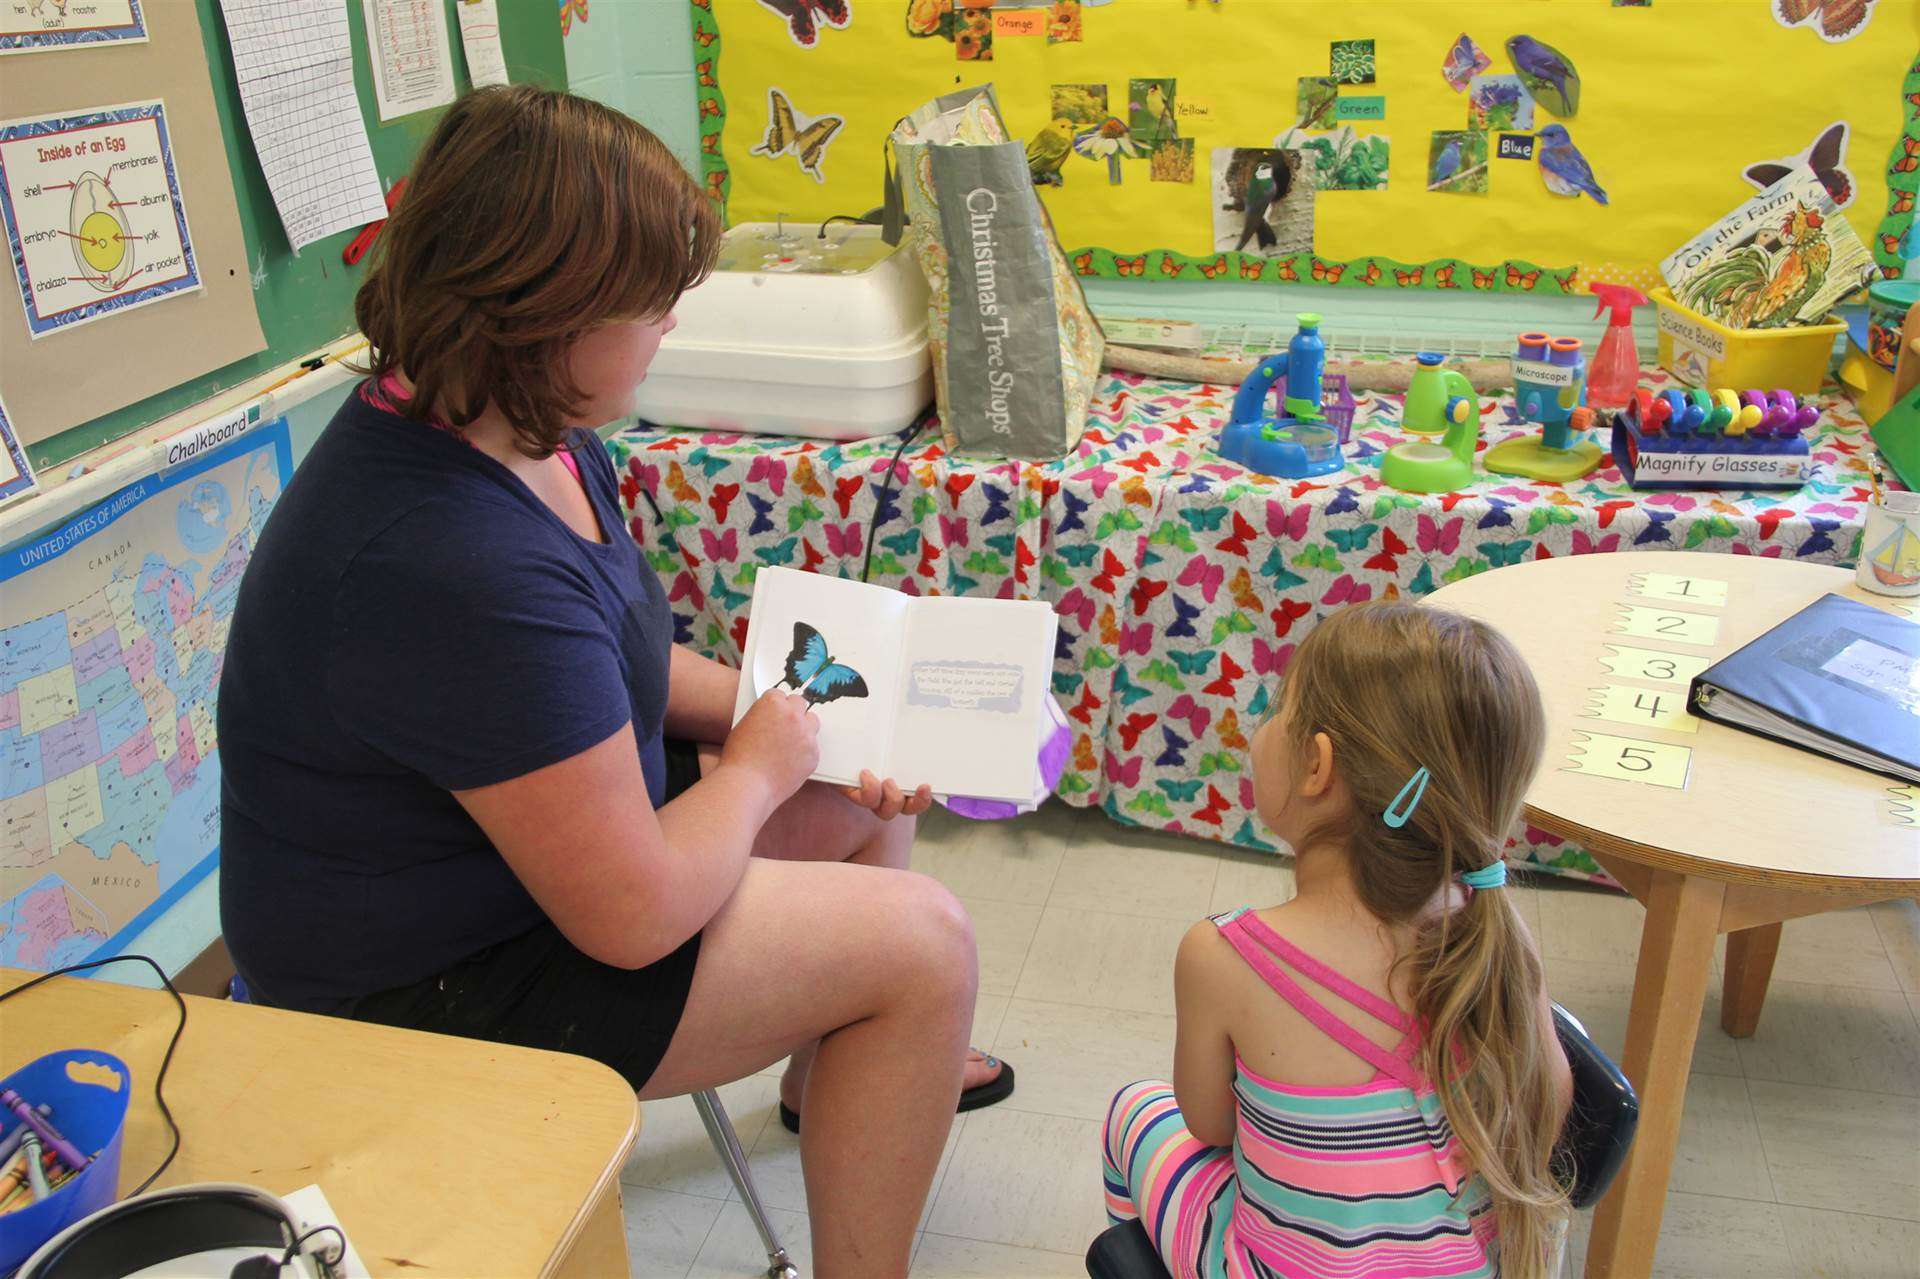 high school girl reads book to nursery school girl